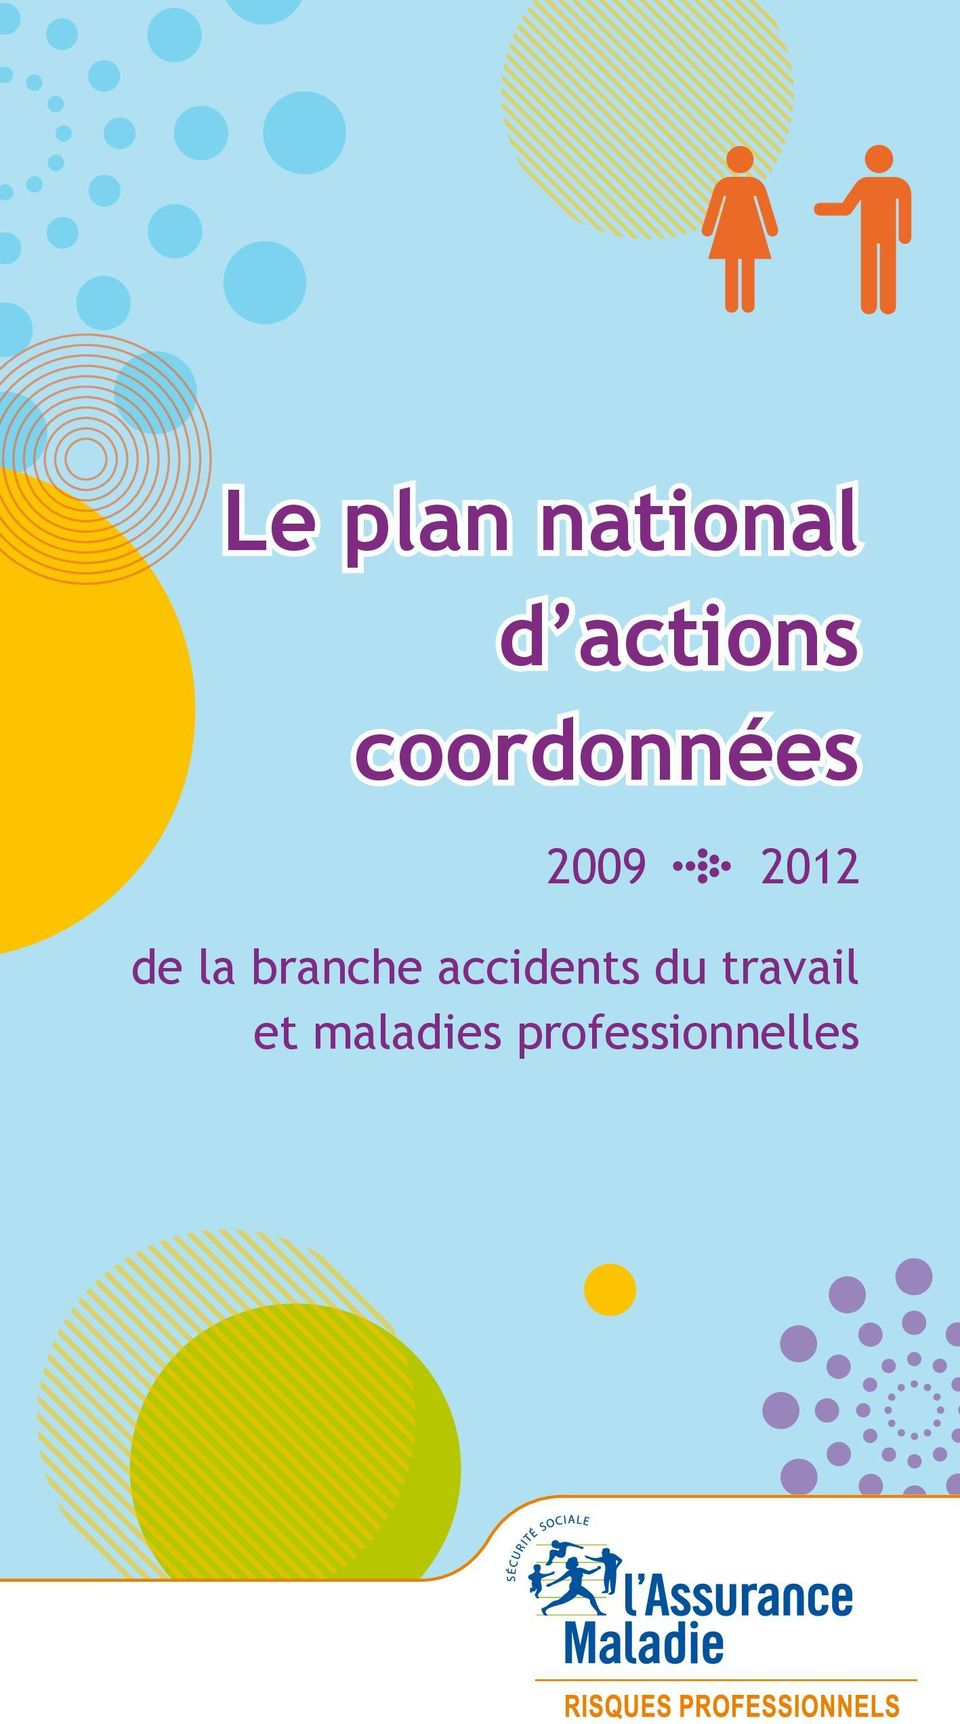 branche accidents du